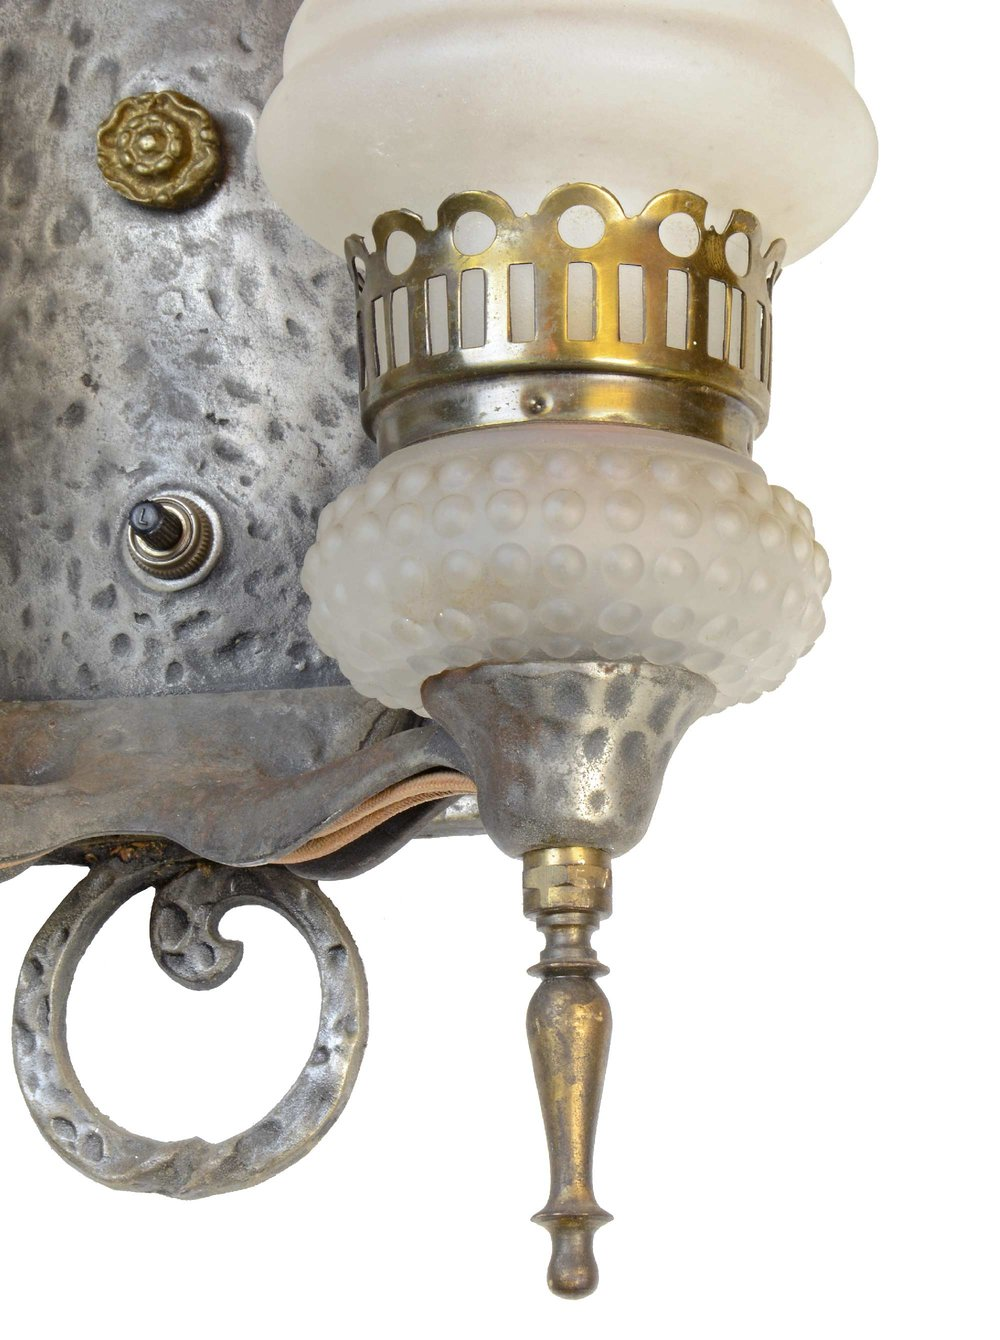 46795-virden-2-arm-tudor-sconce-with-shades-bottom.jpg